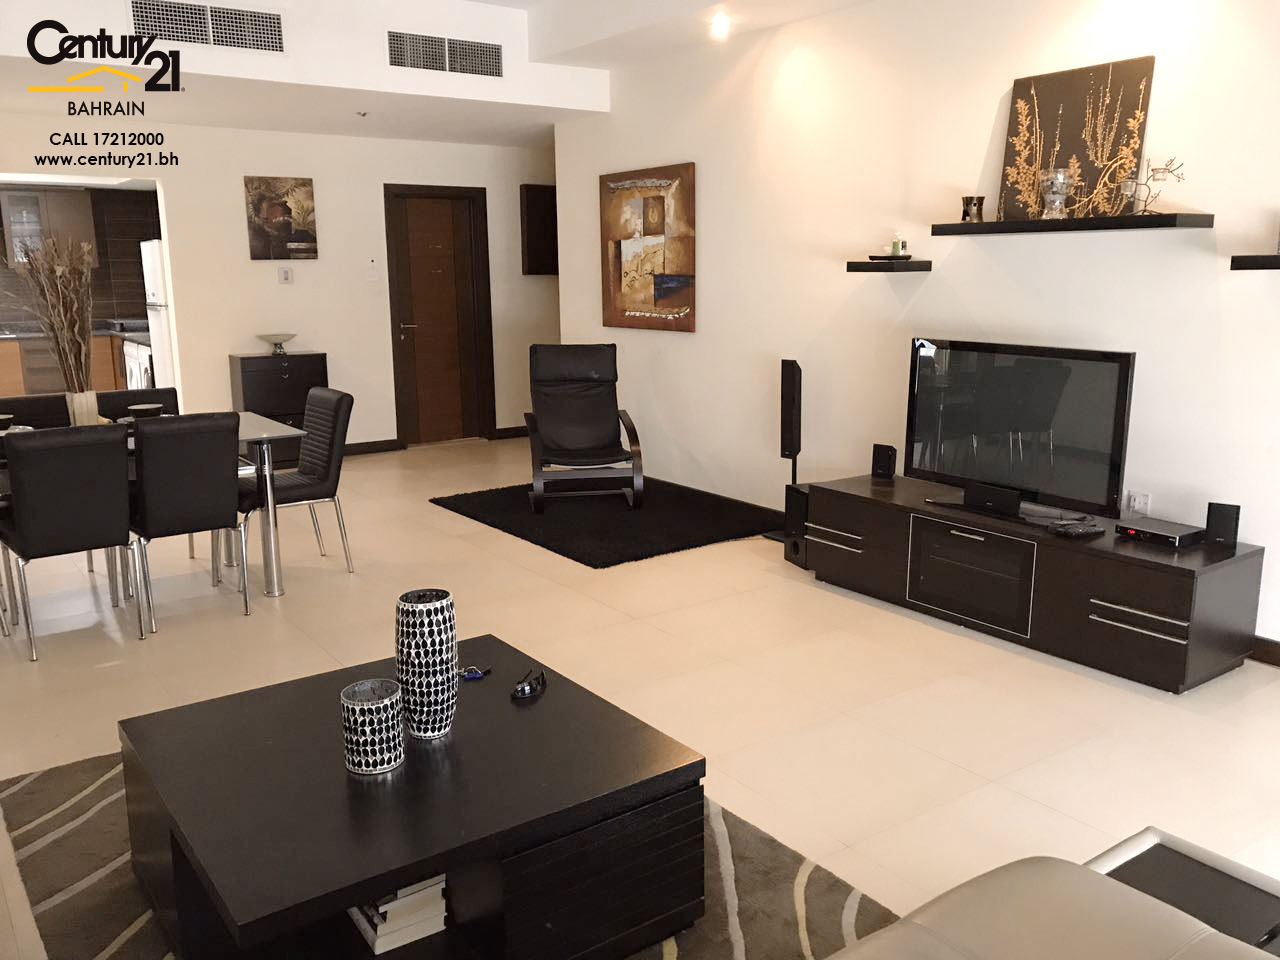 2 bedroom apartment for rent sale in juffair fr719 for Apartment for rent 2 bedroom